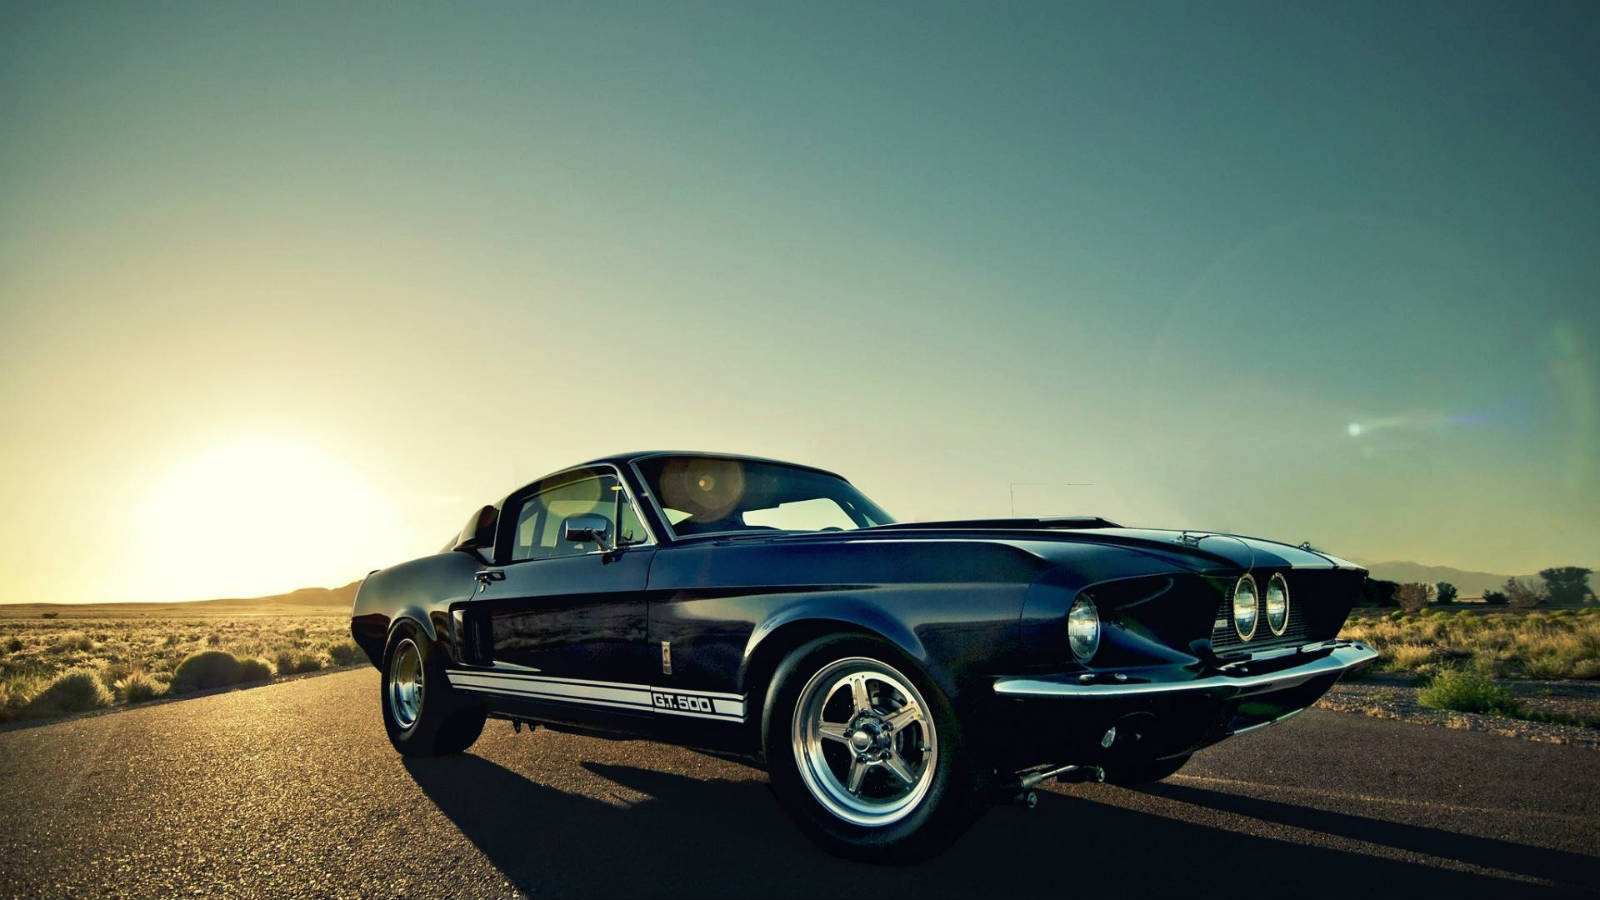 Ford Mustang Classic Cars Picture Idokeren